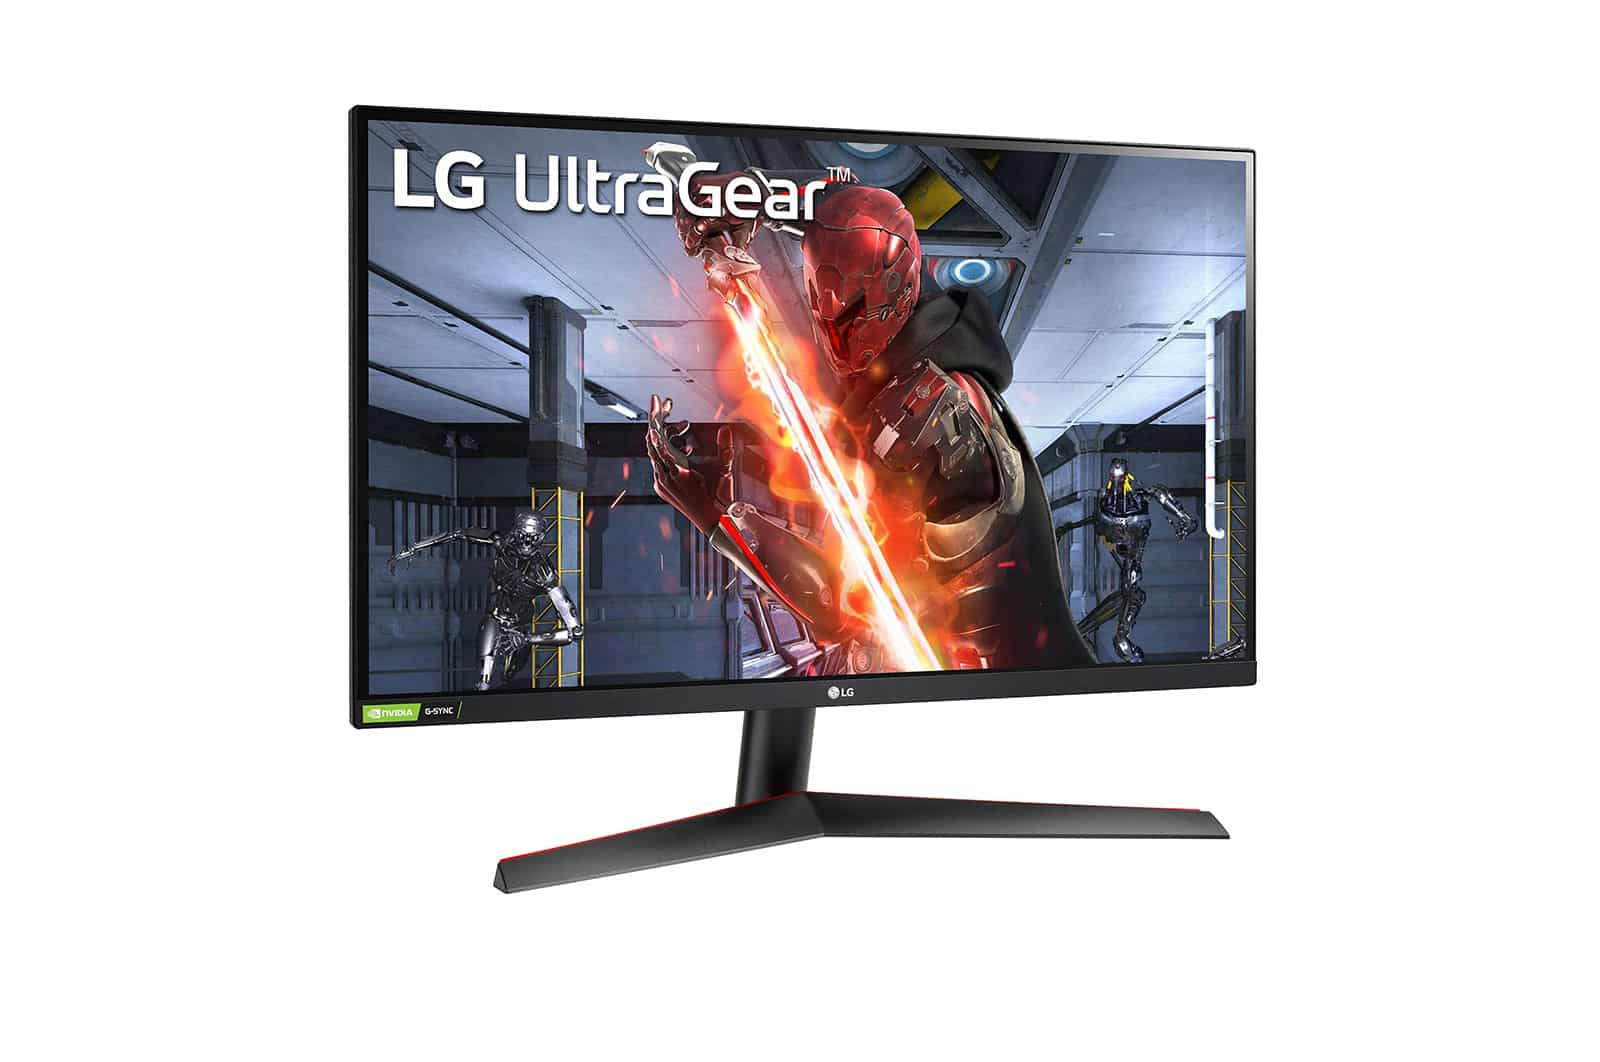 LG revealed the new UltraGear 27GN800-B, comes with NVIDIA G-Sync and AMD FreeSync Premium